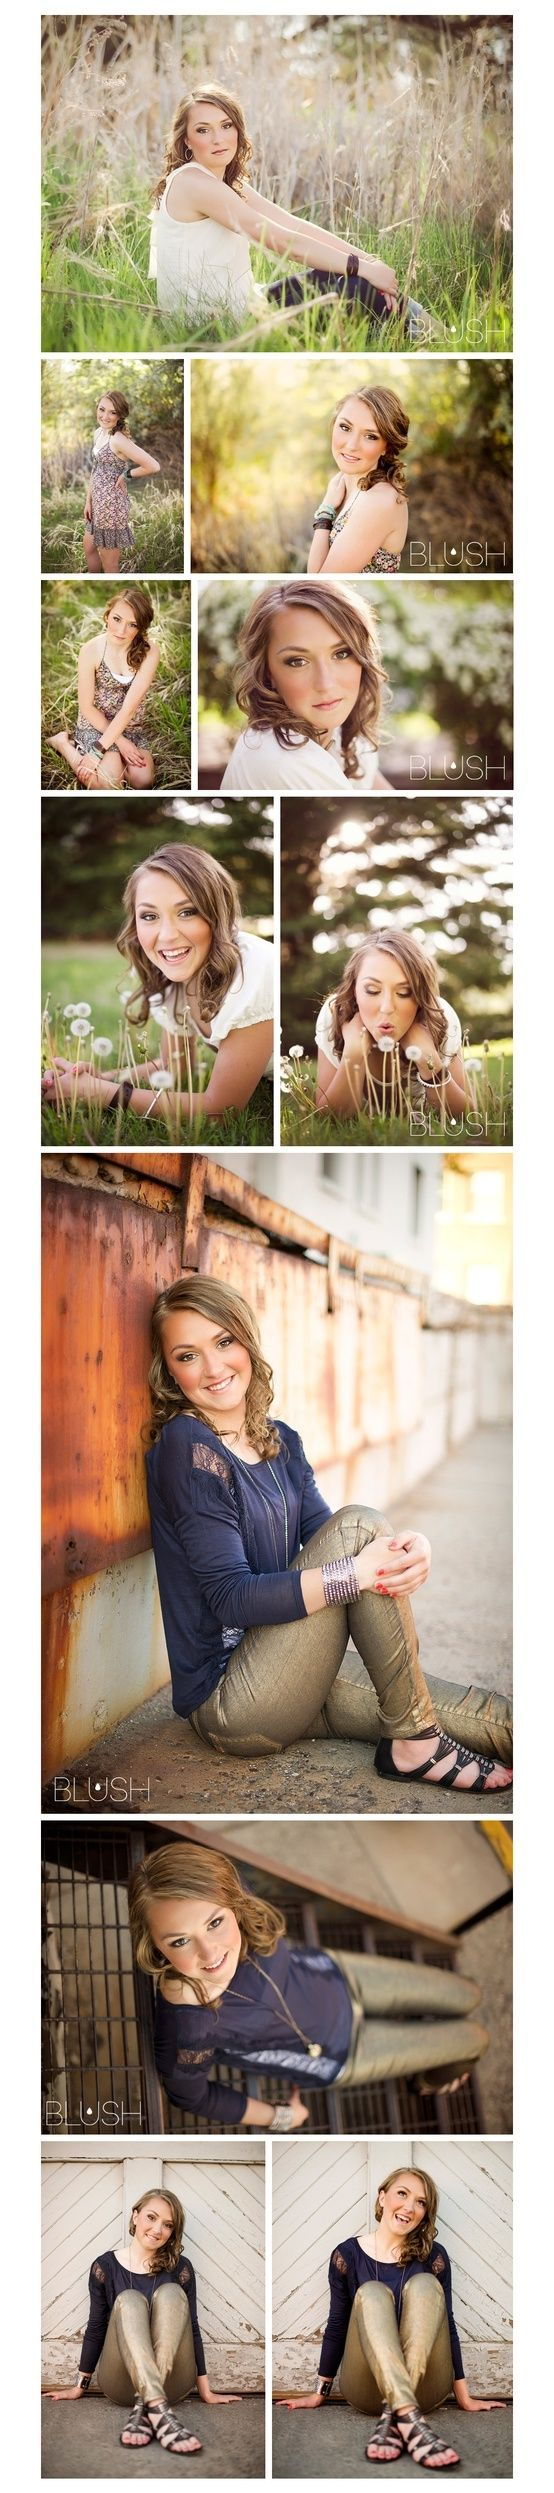 senior by MIneral Photography - Nadia Nadeau